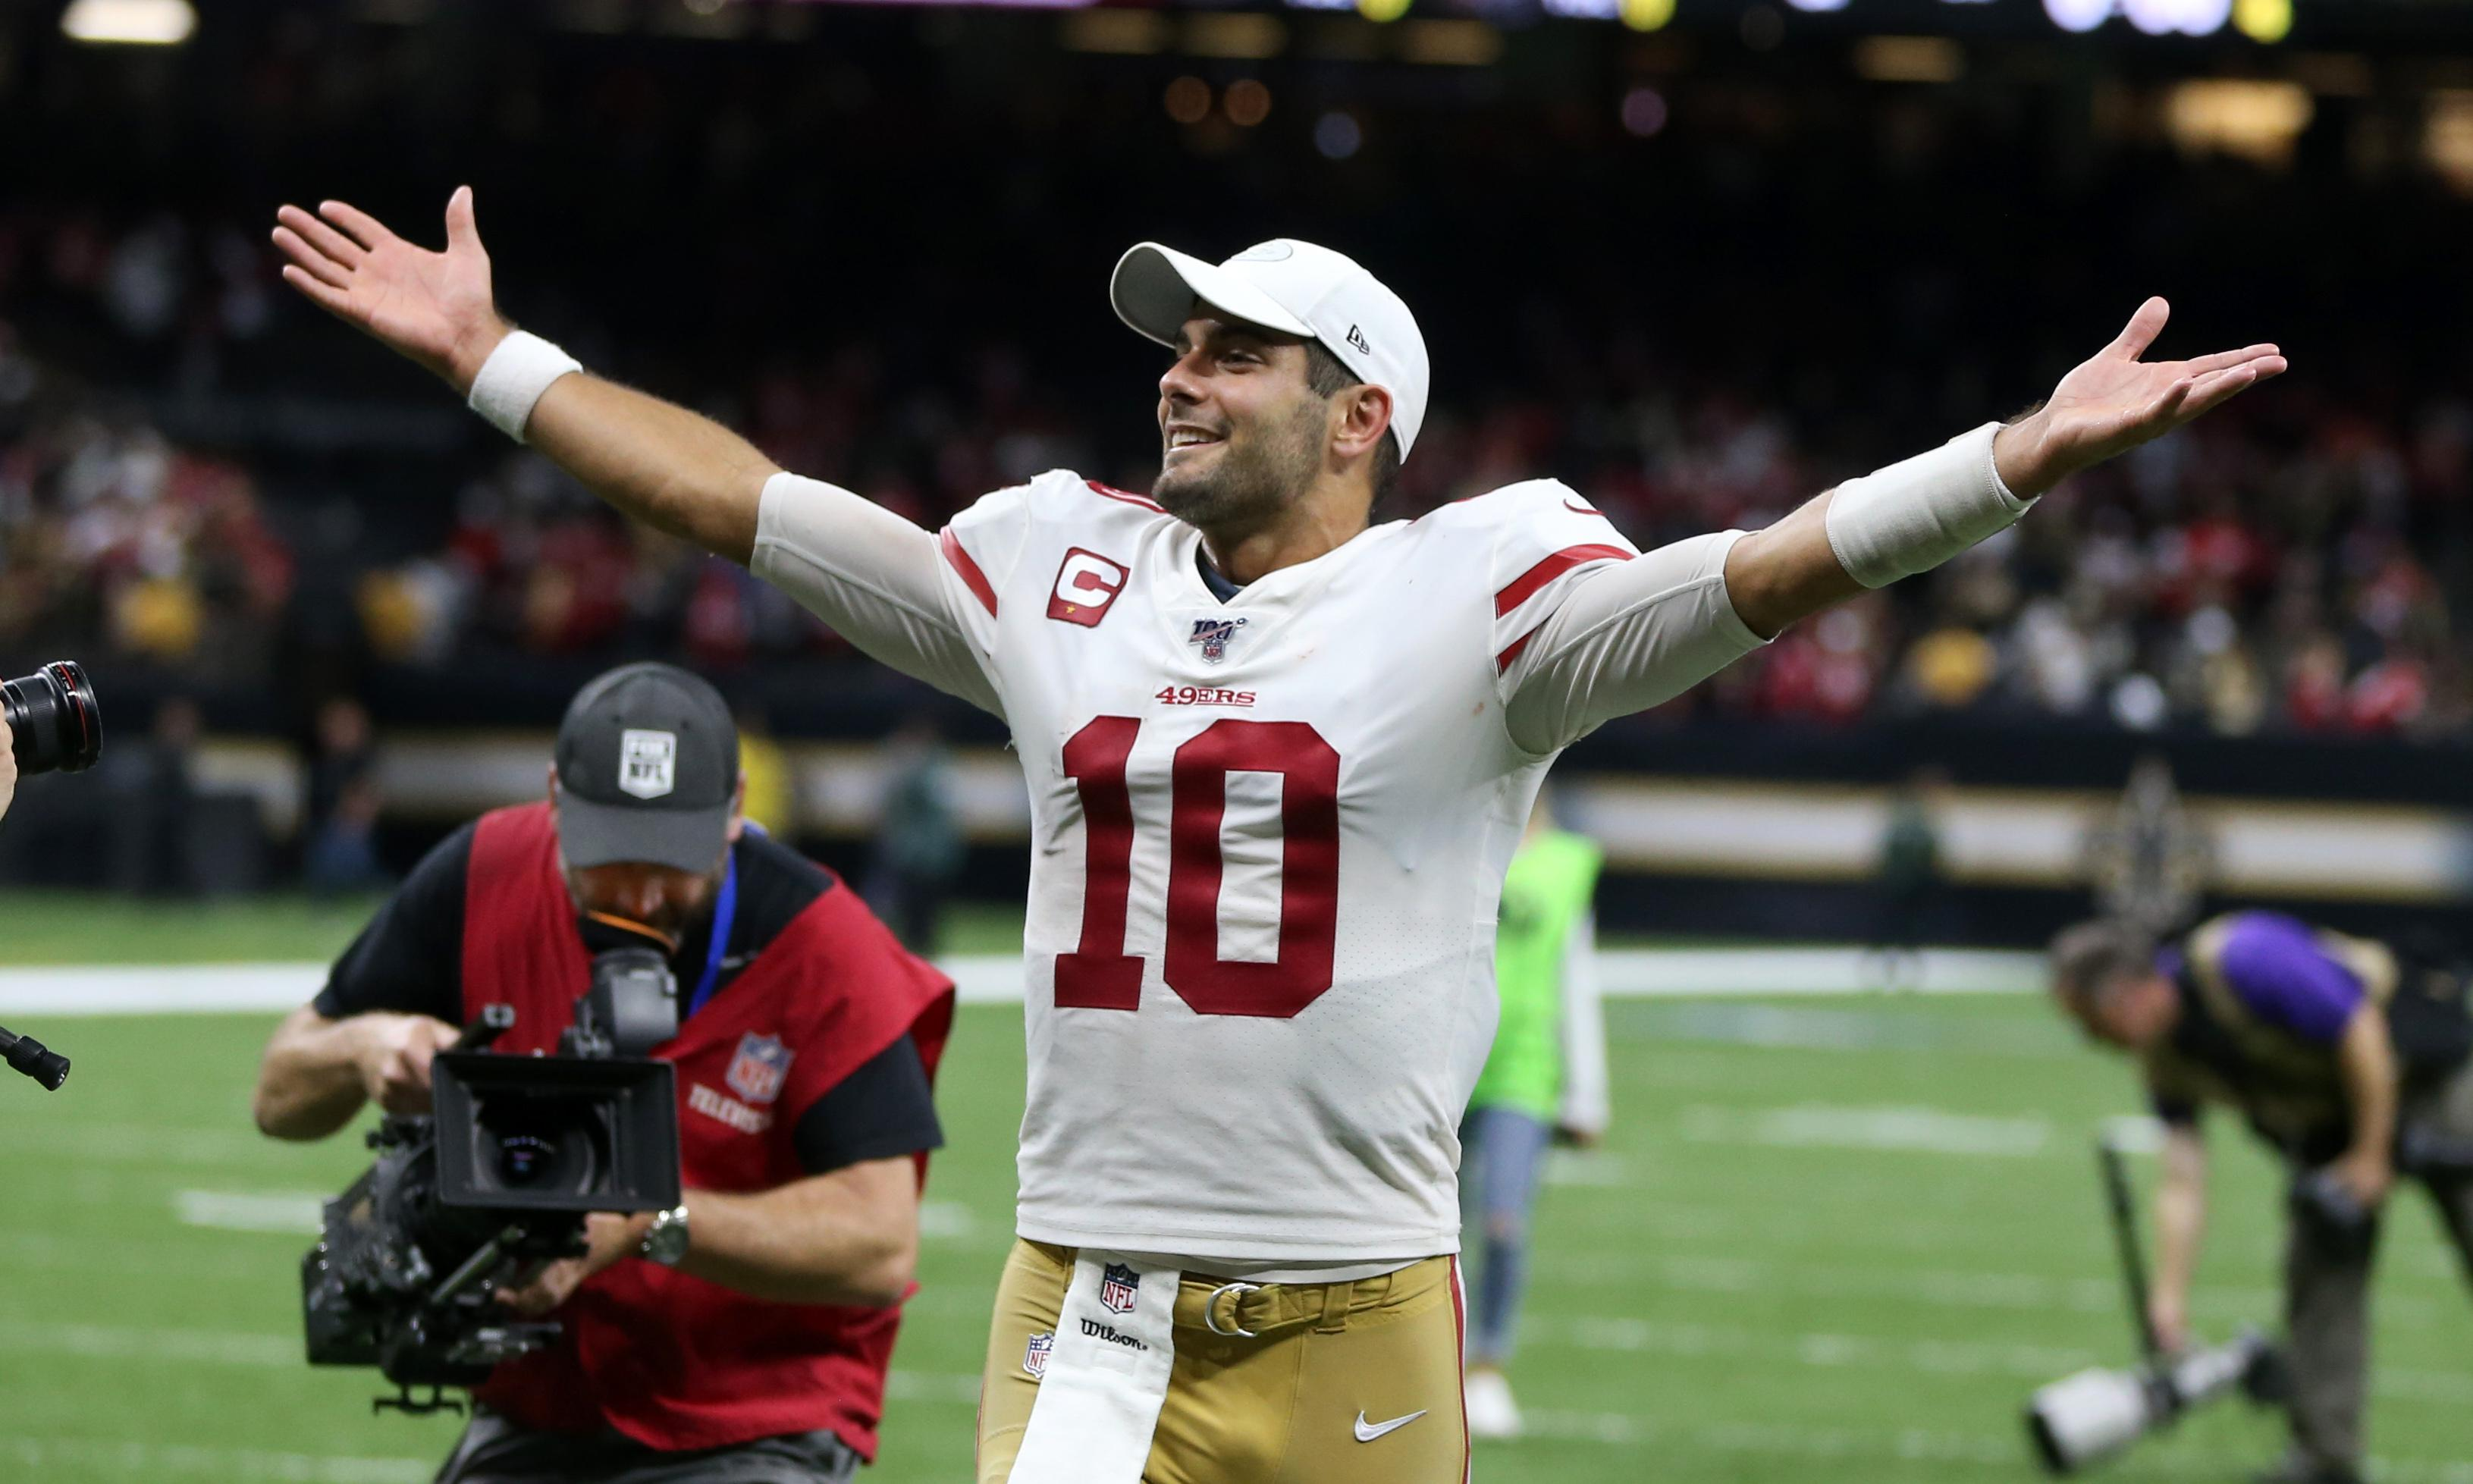 The 49ers are a revelation but the NFL's ridiculous seeding could kill them